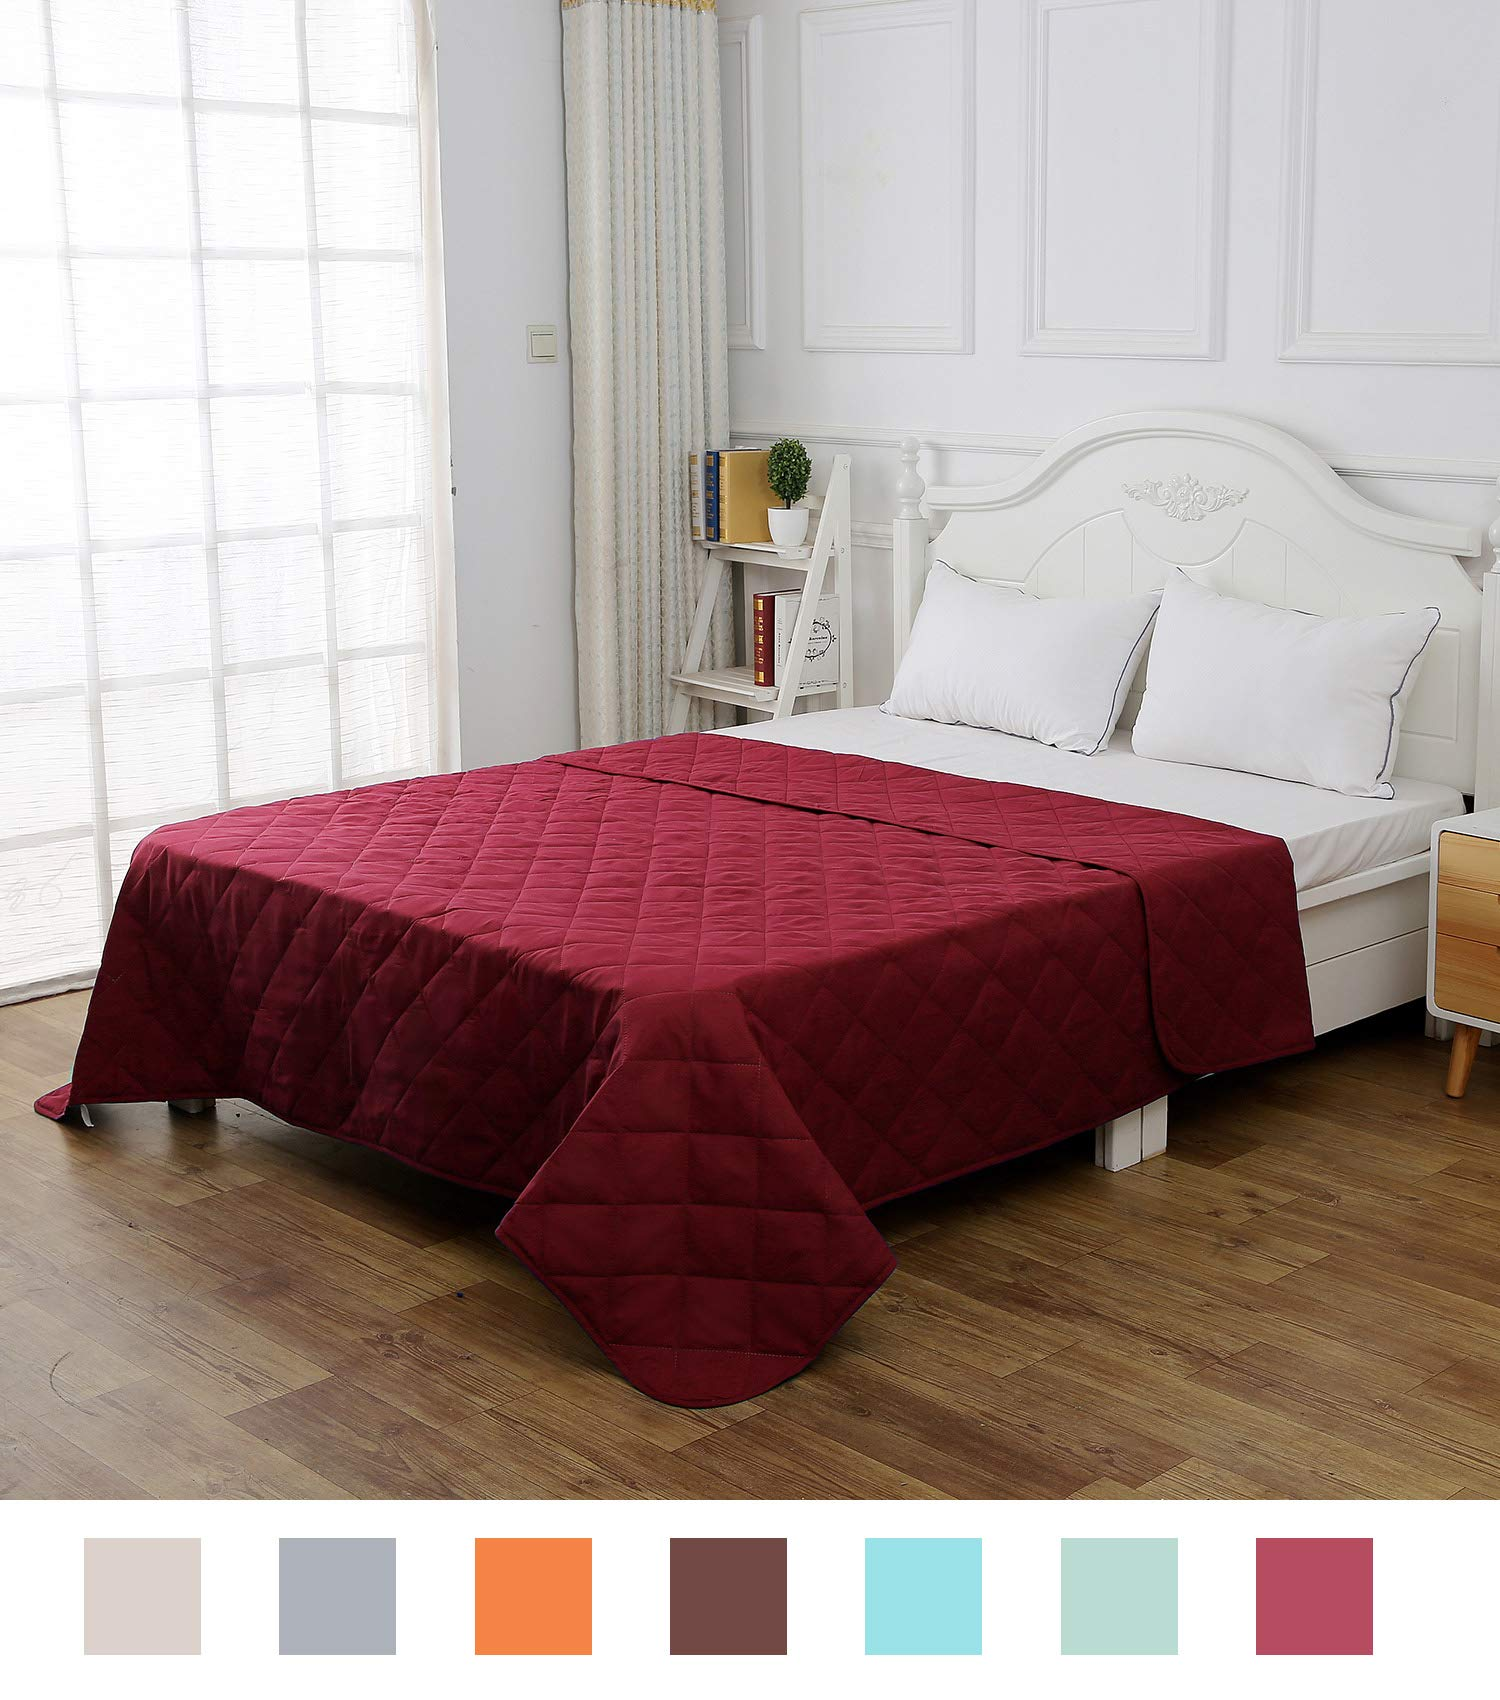 CottonTex Reversible Super Soft Bedspread Mulberry,Twin Size 68x86 inches Diamond Pattern Lightweight Hypoallergenic Microfiber Bed Coverlet Alternative Quilt